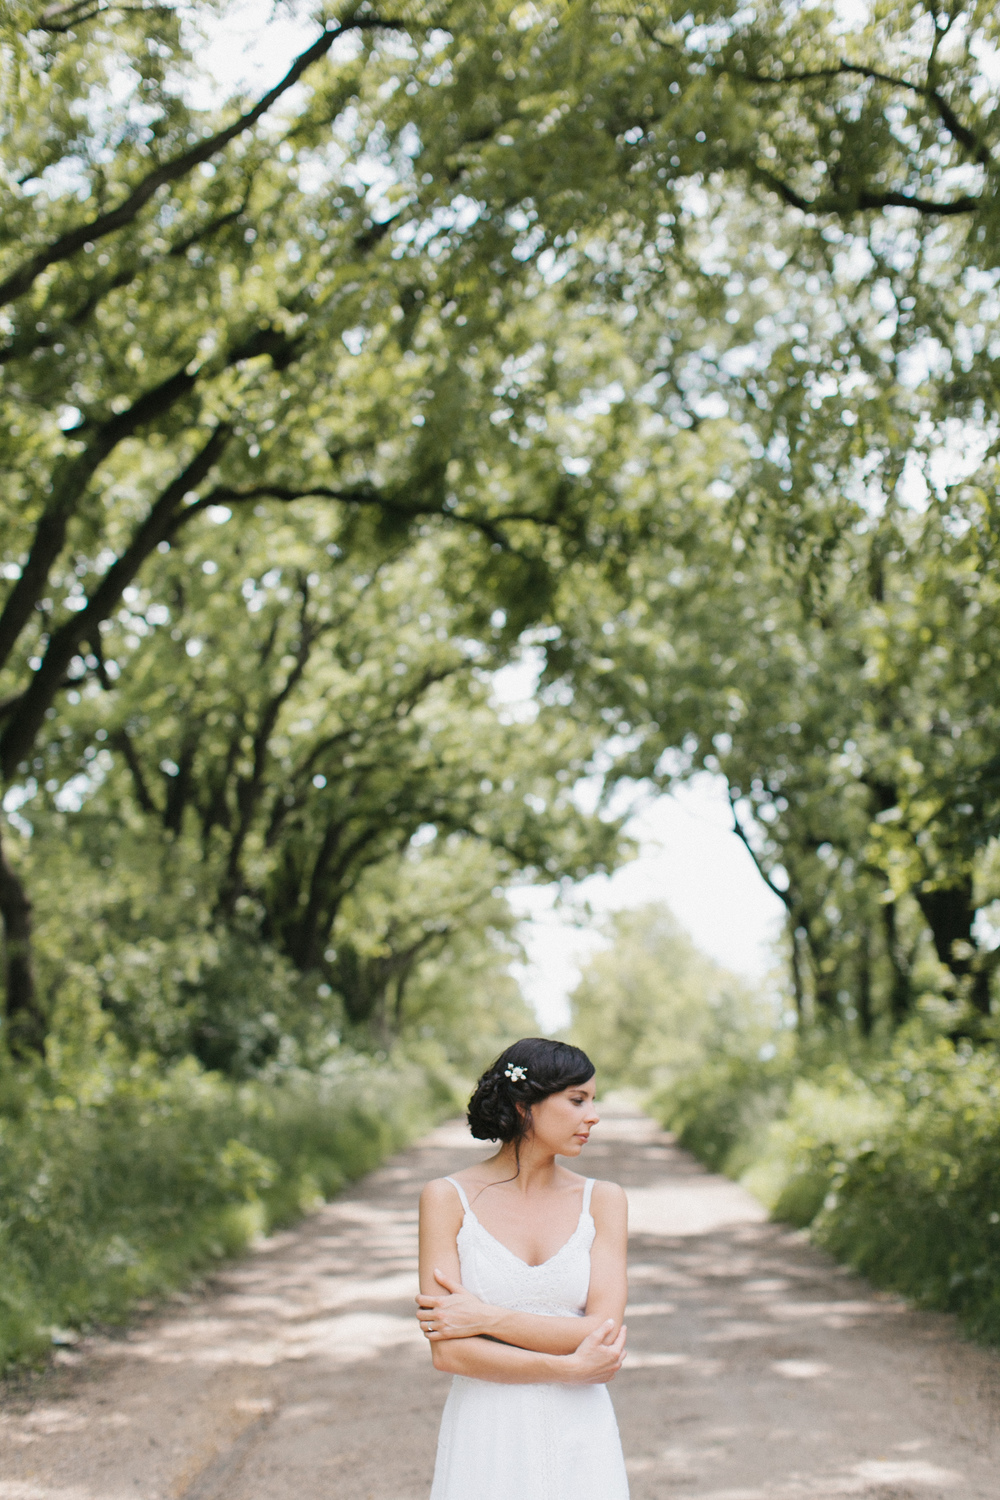 Heritage Prairie Farm Chicago Wedding Photographer Mae Stier-160.jpg